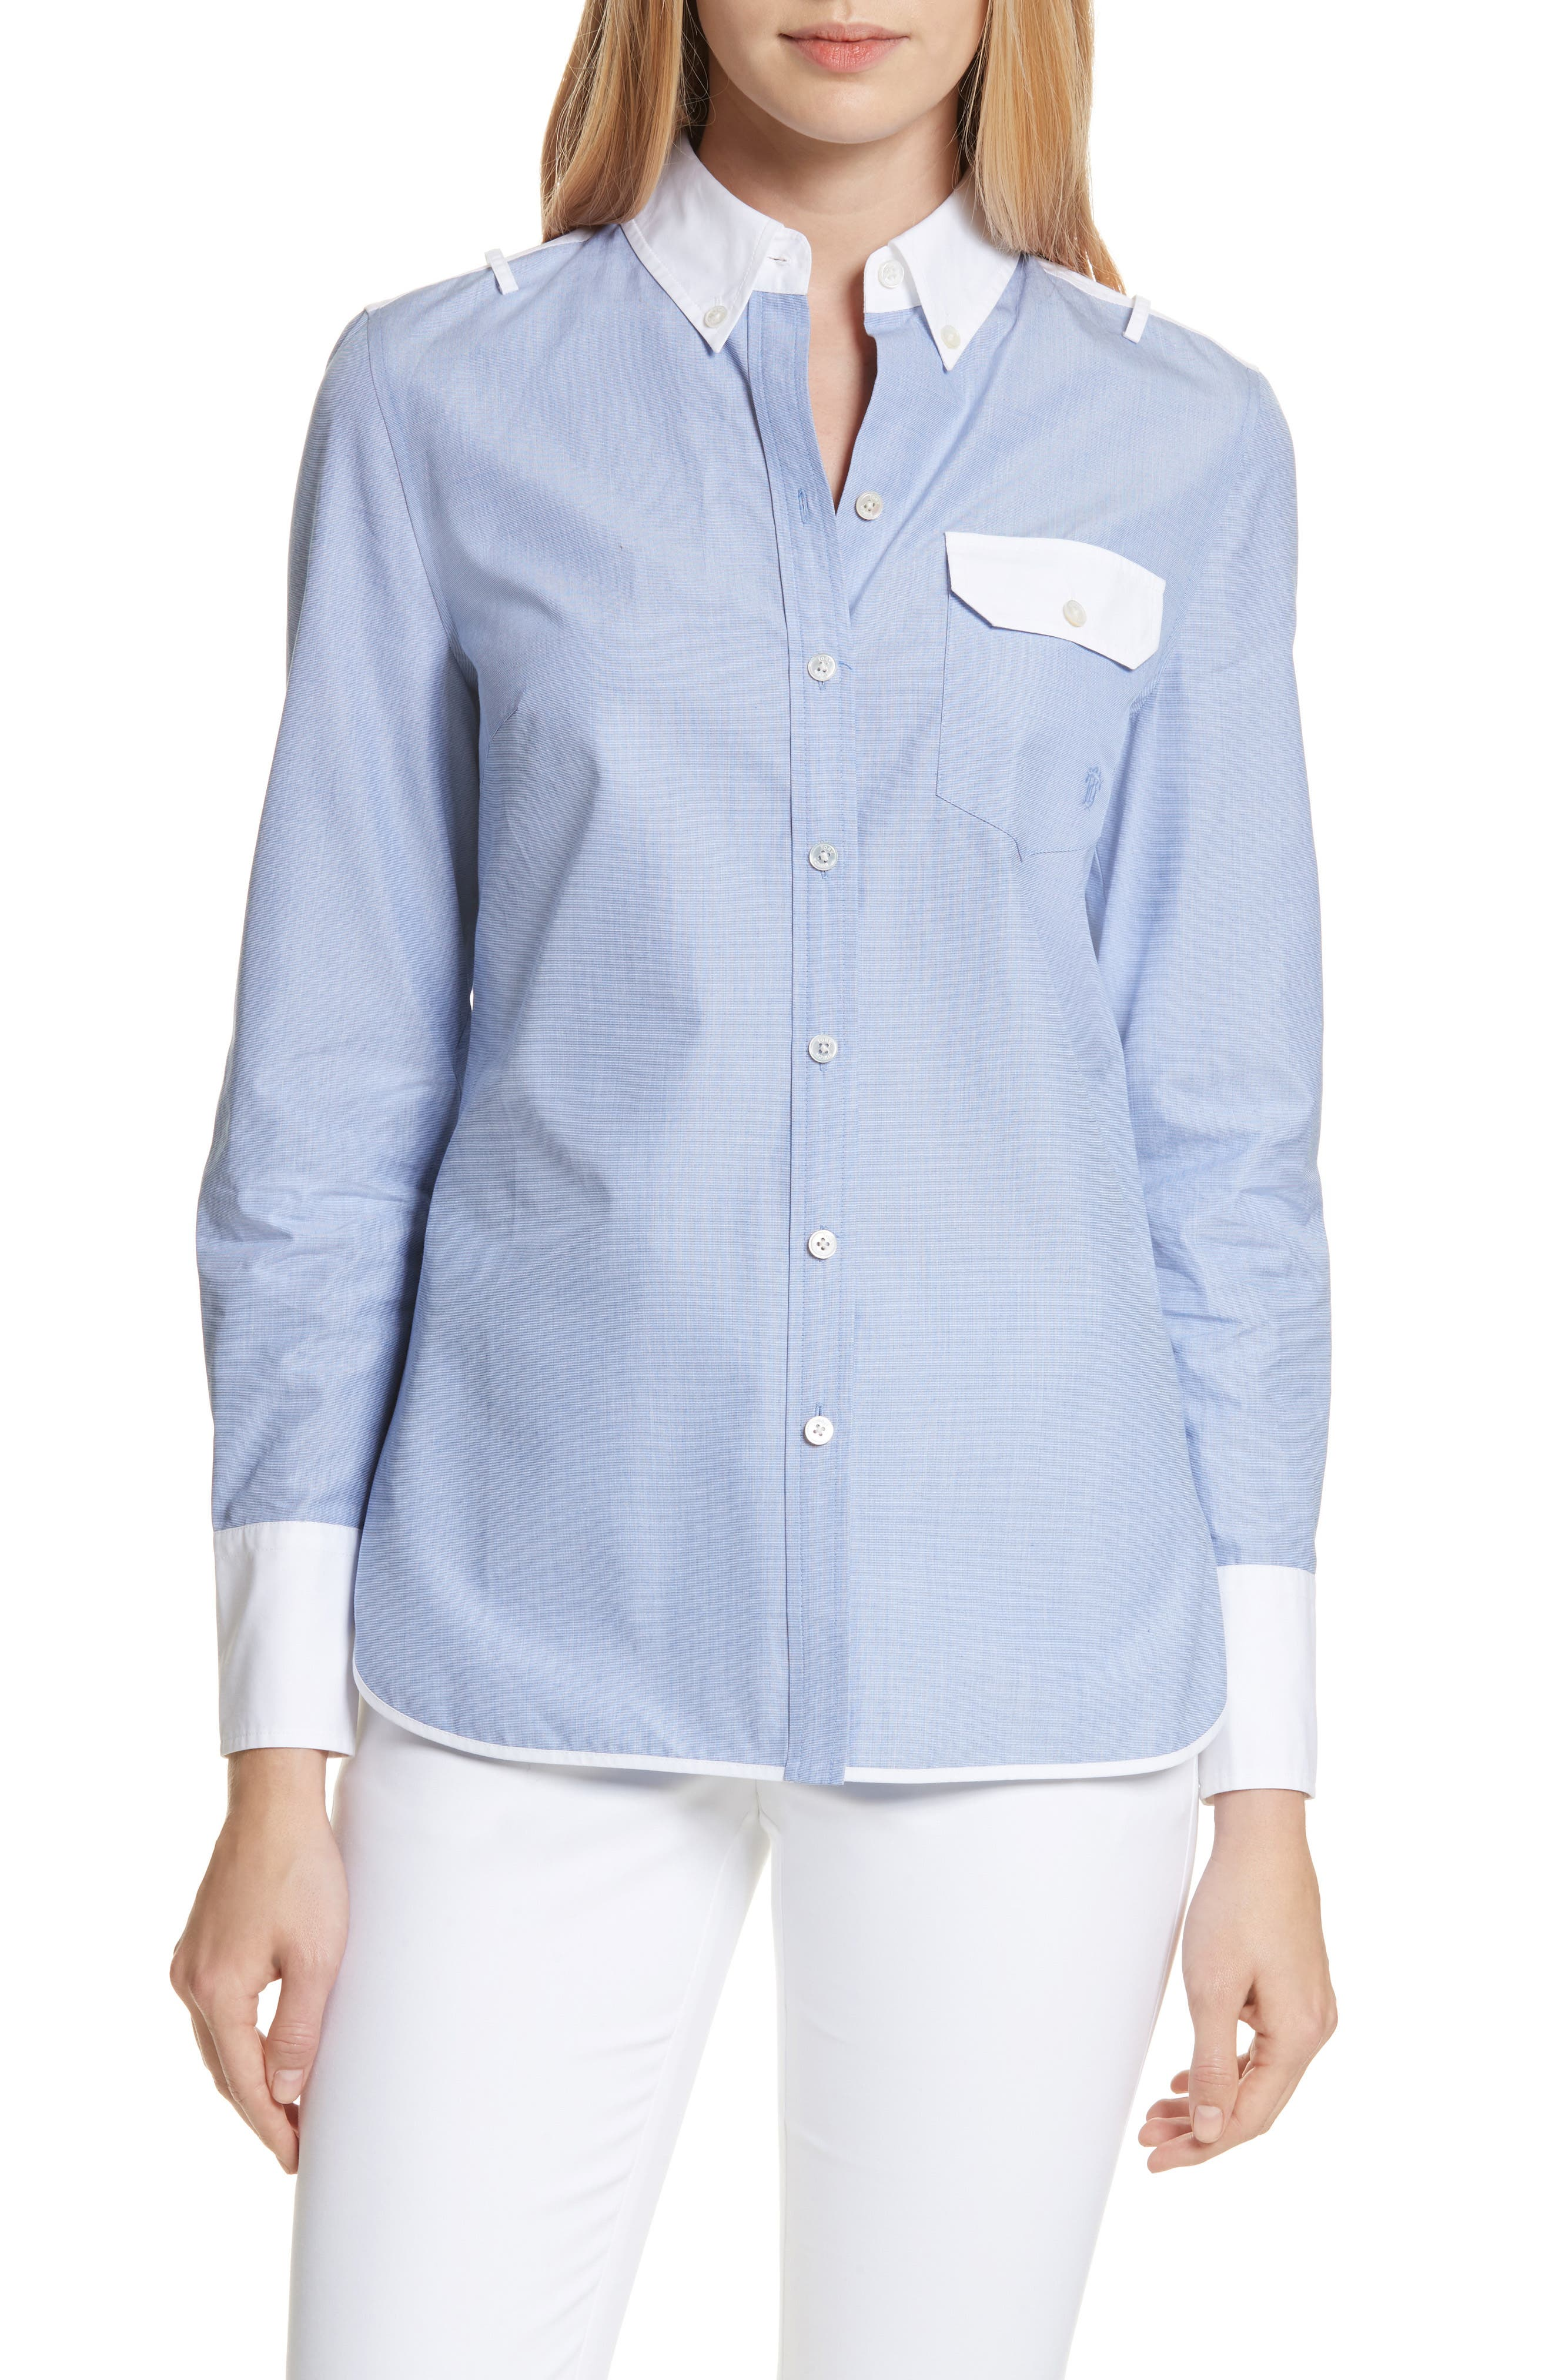 Piper Contrast Cotton Top,                         Main,                         color, Blue